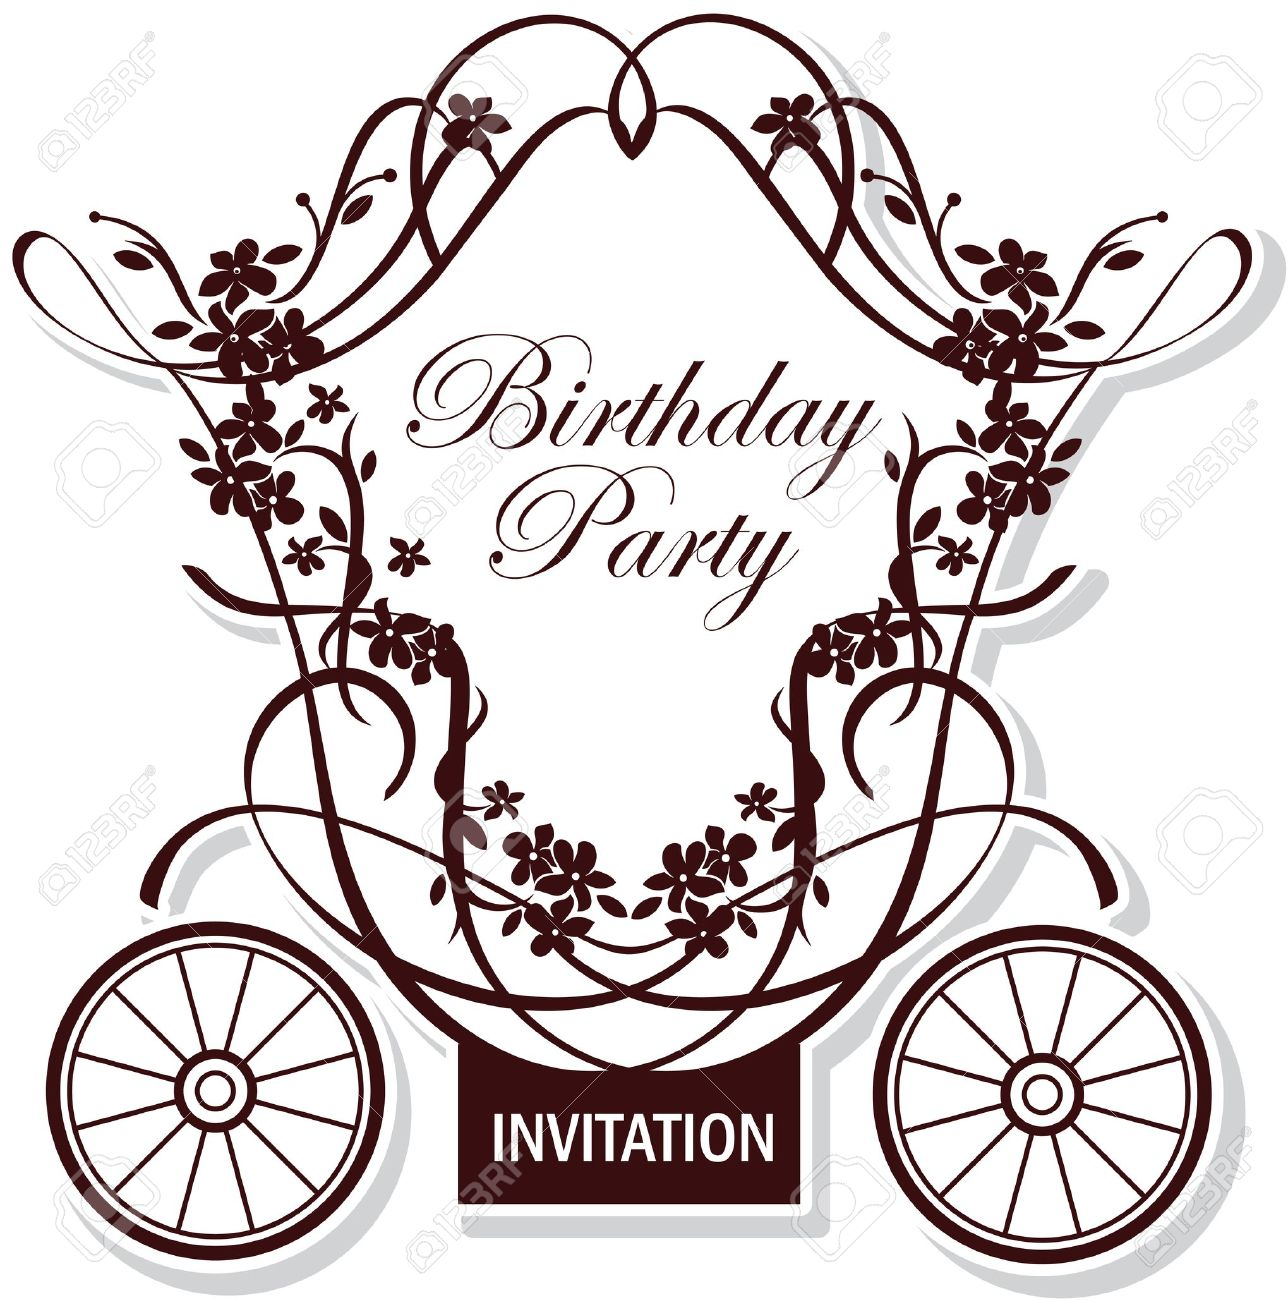 Birthday or wedding invitation design with fairytale carriage birthday or wedding invitation design with fairytale carriage stock vector 9856319 stopboris Images